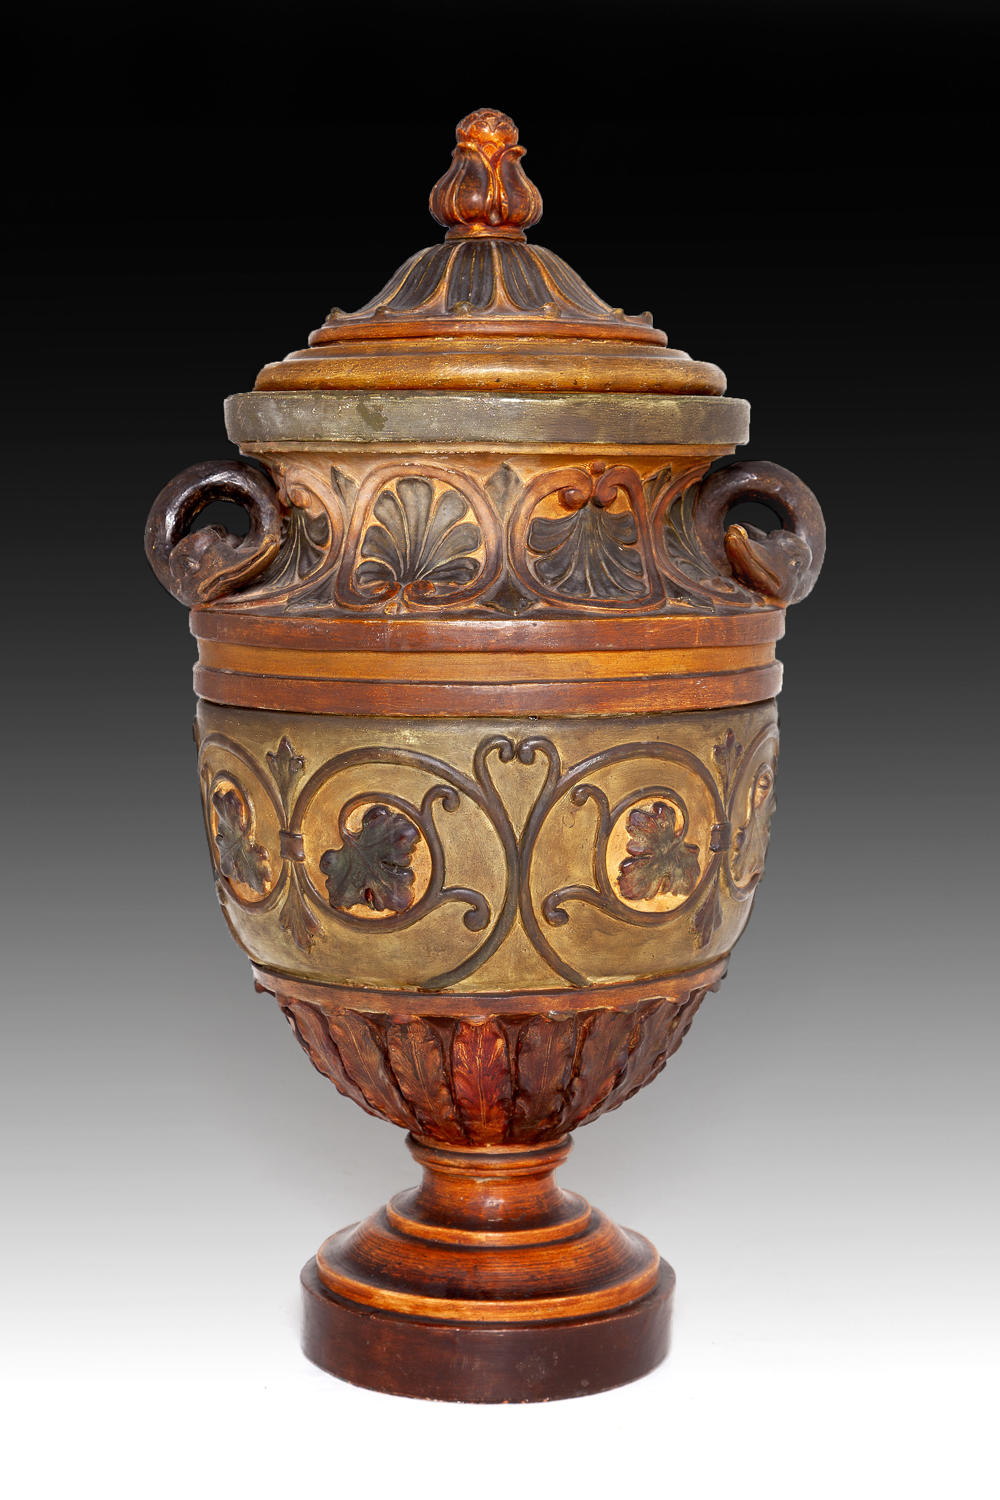 An large Italian 19th century terracotta vase